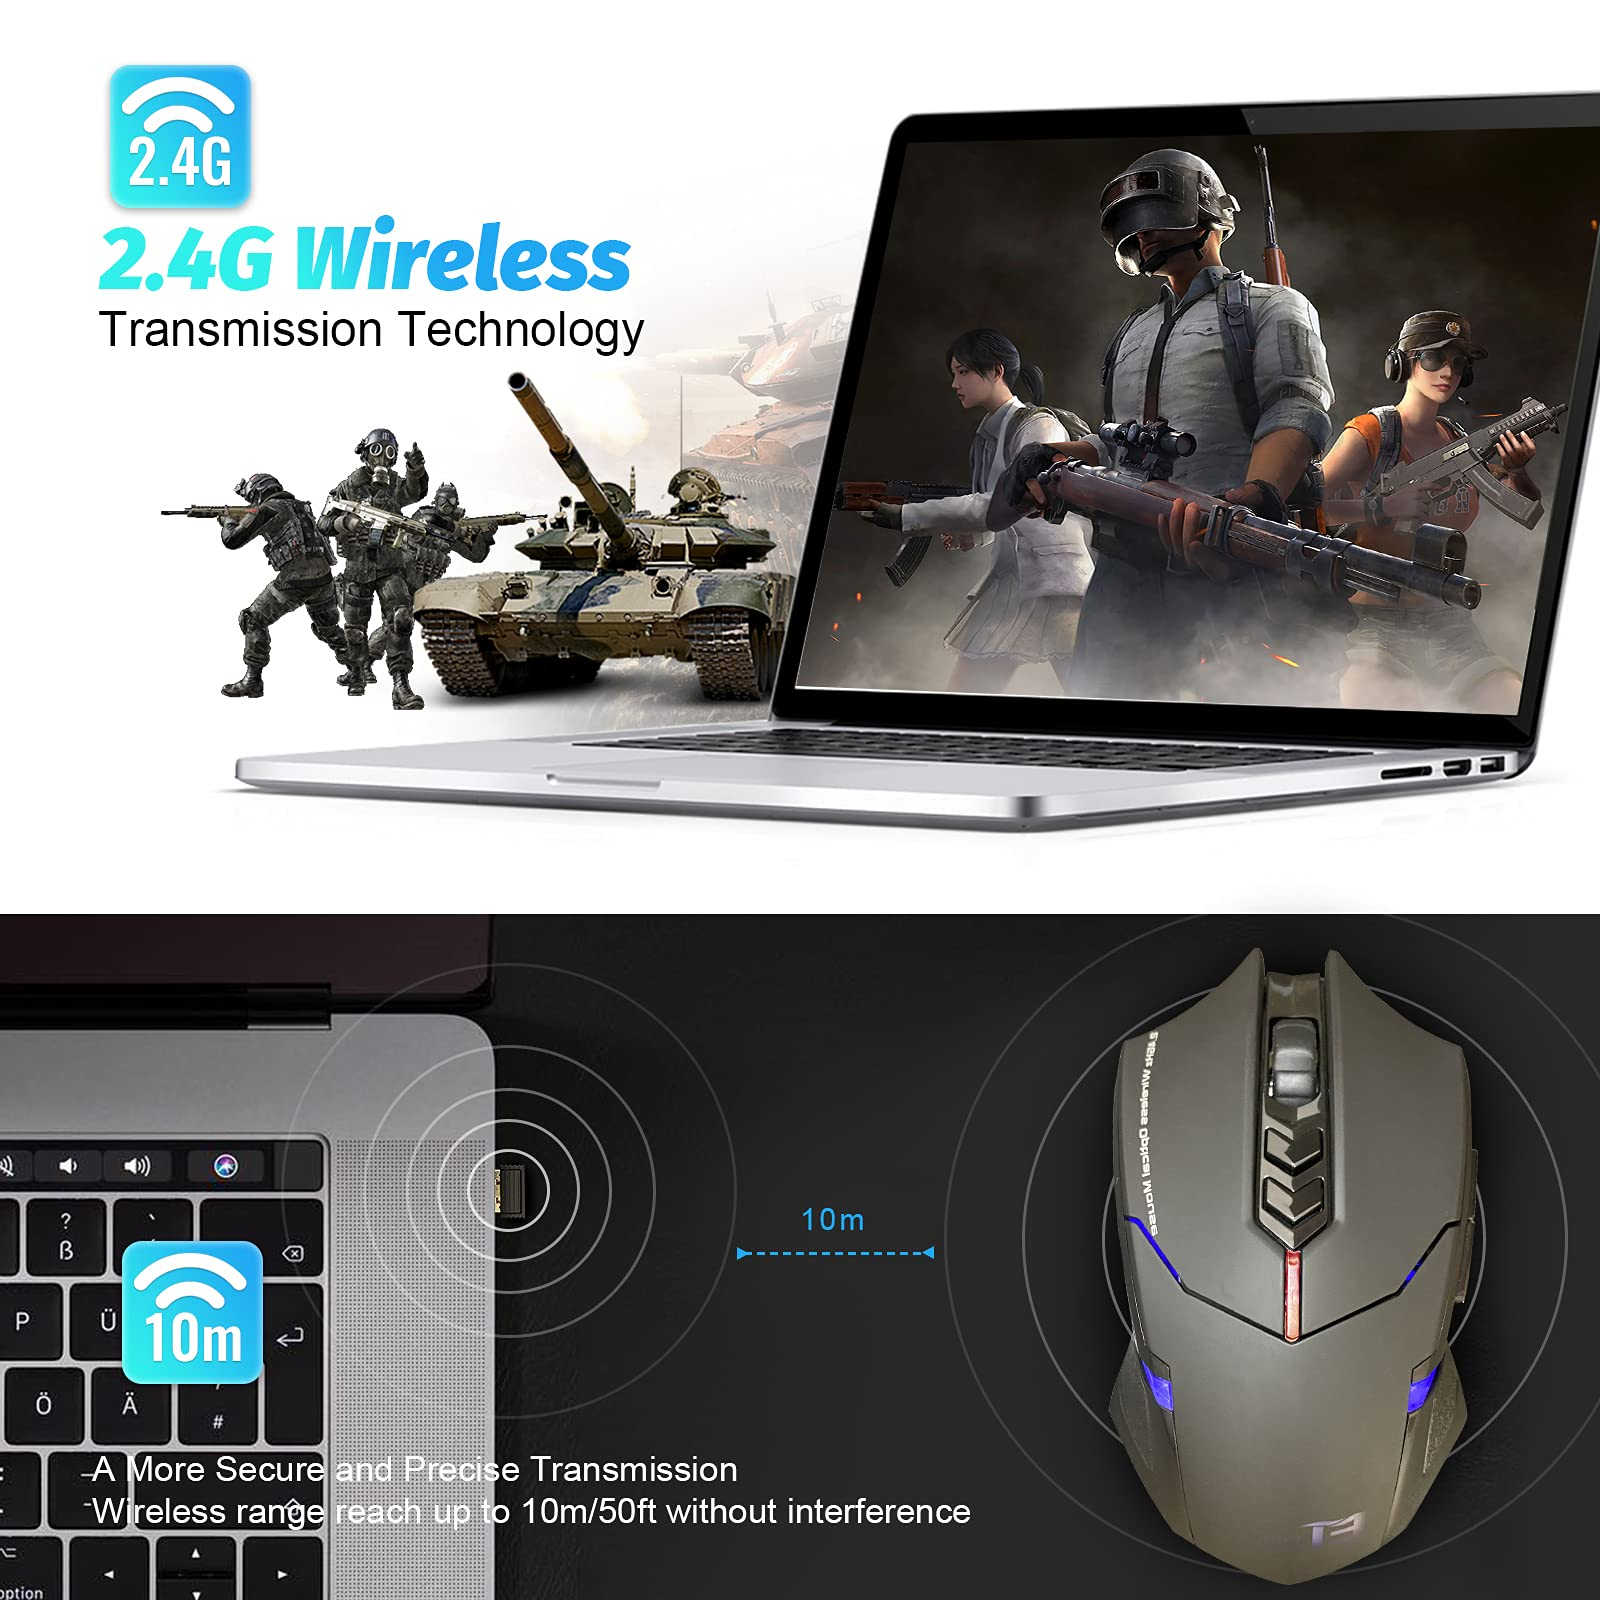 SKY TOUCH Wireless Gaming Mouse with Unique Silent Click, Ergonomic Grips, 2400 DPI, 2 Programmable Side Buttons, Breathing Backlit, 7-Button Design- Black